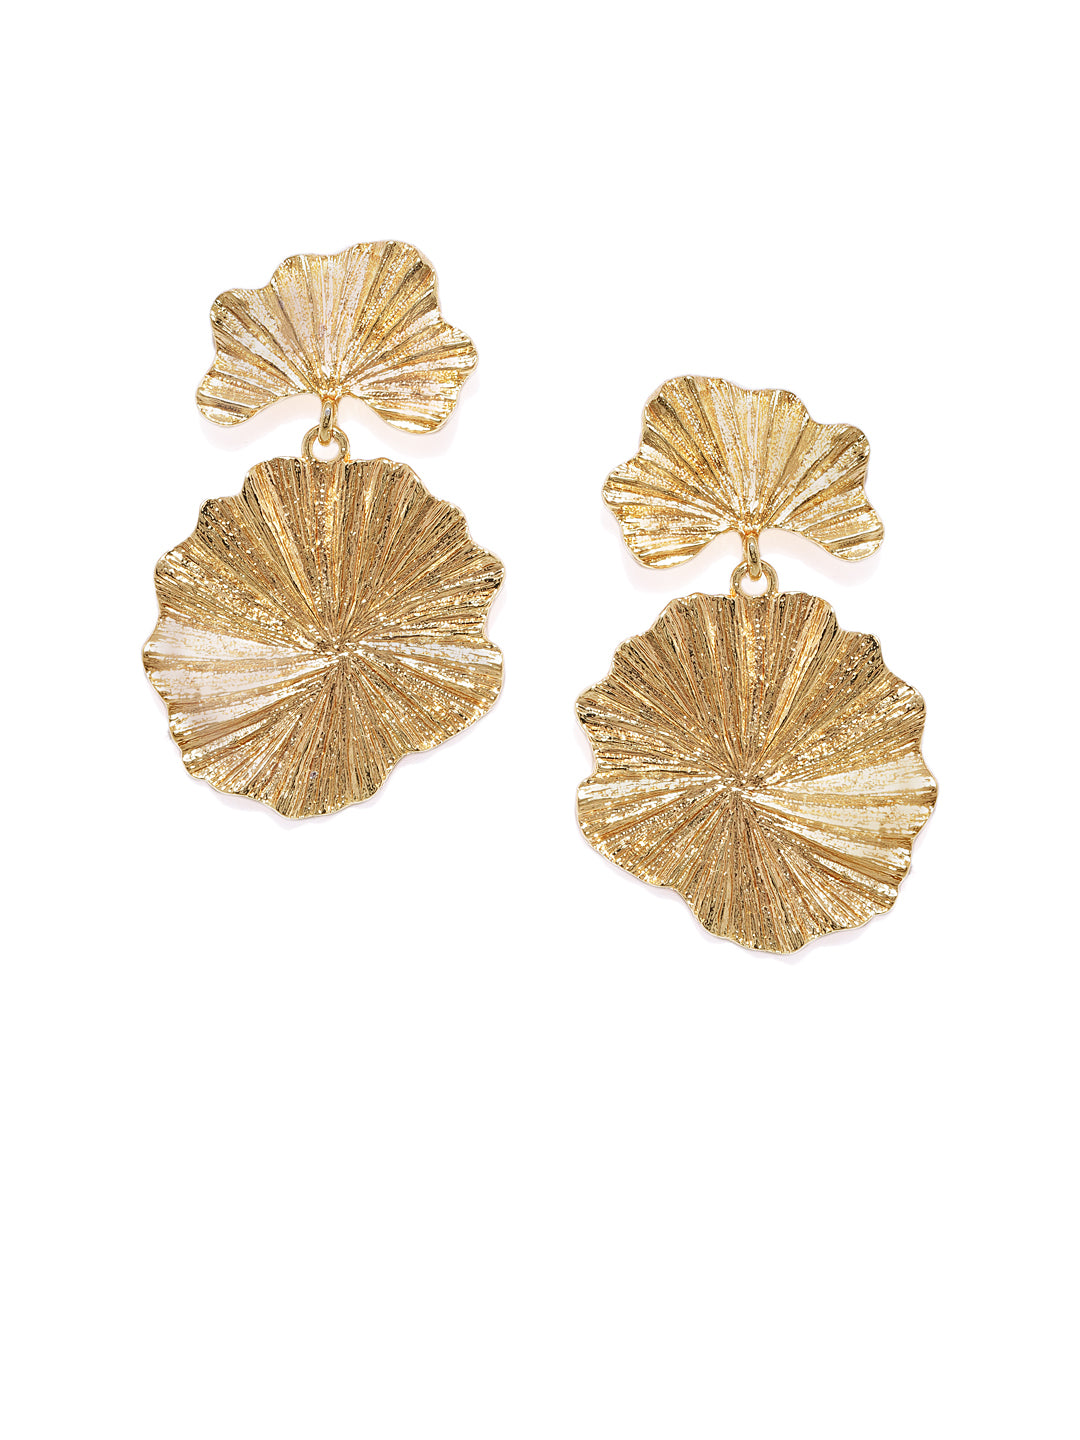 Textured Floral Earrings - ChicMela